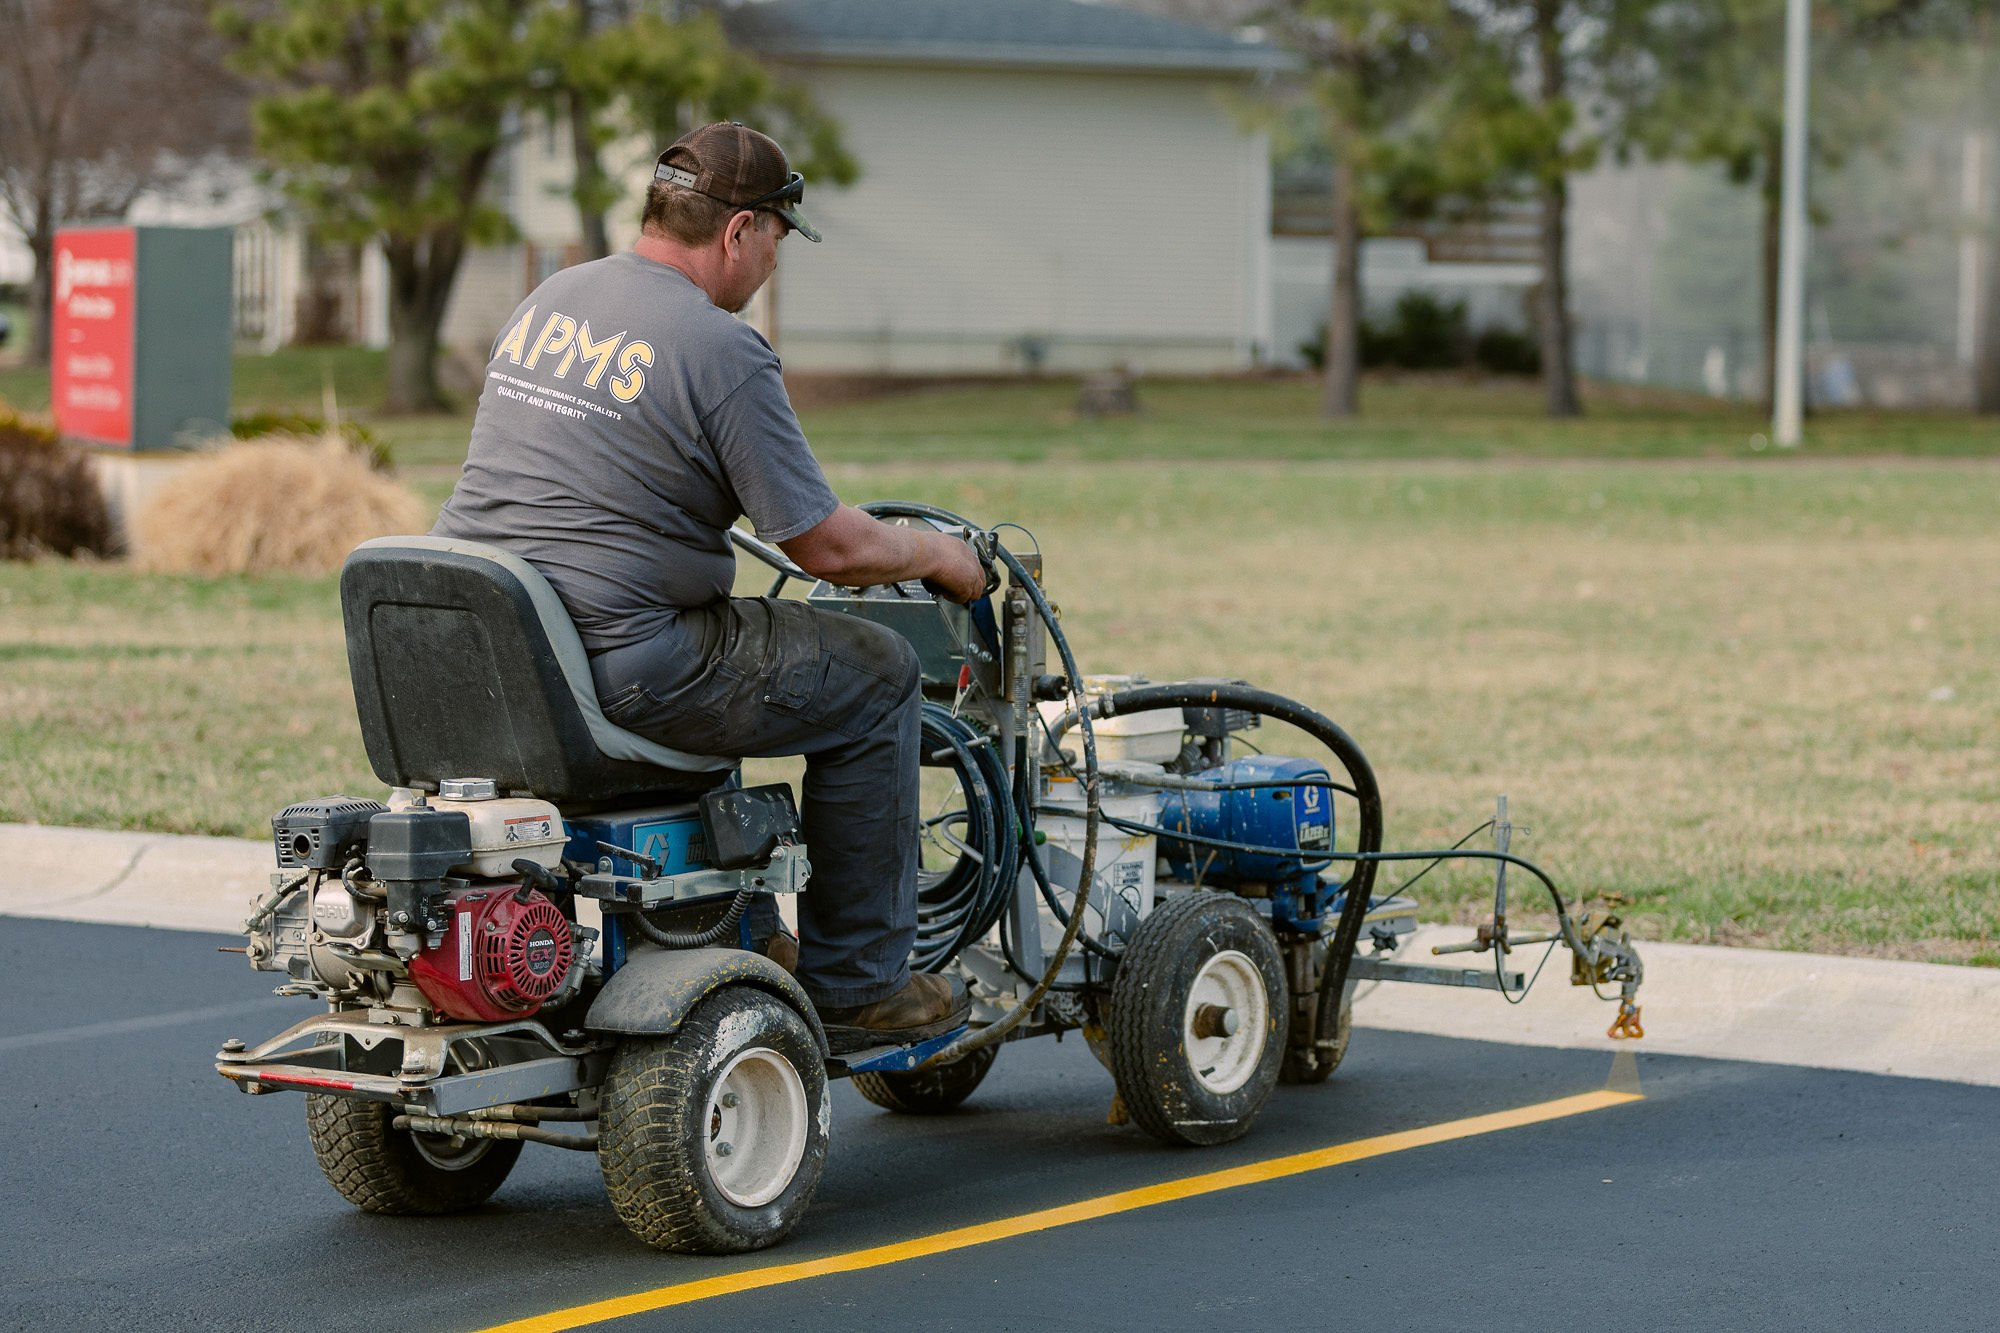 Lincoln Paving and Asphalt Repair apms 1292 - America's Pavement Maintenance Specialist | Lincoln, Nebraska